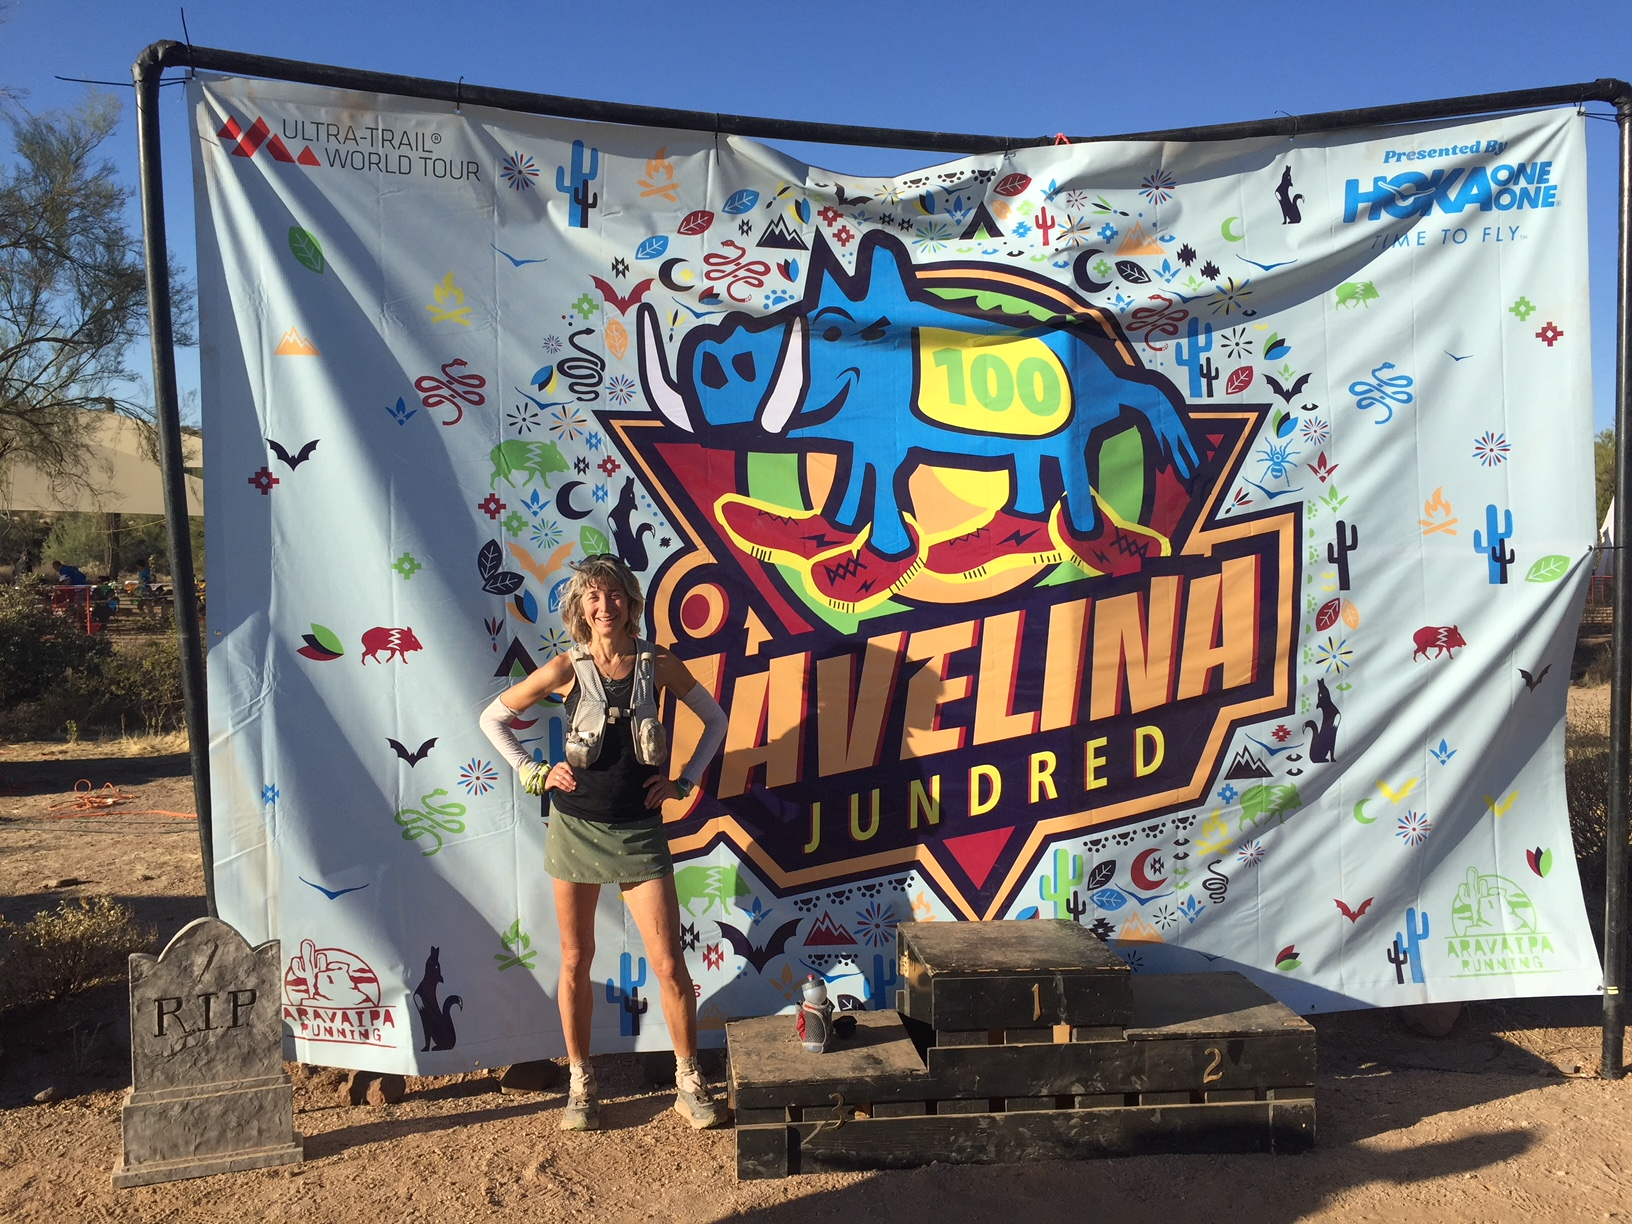 Ultramarathon mindset coach Susan Donnelly trains to do more than survive 100-mile races like Javelina 100